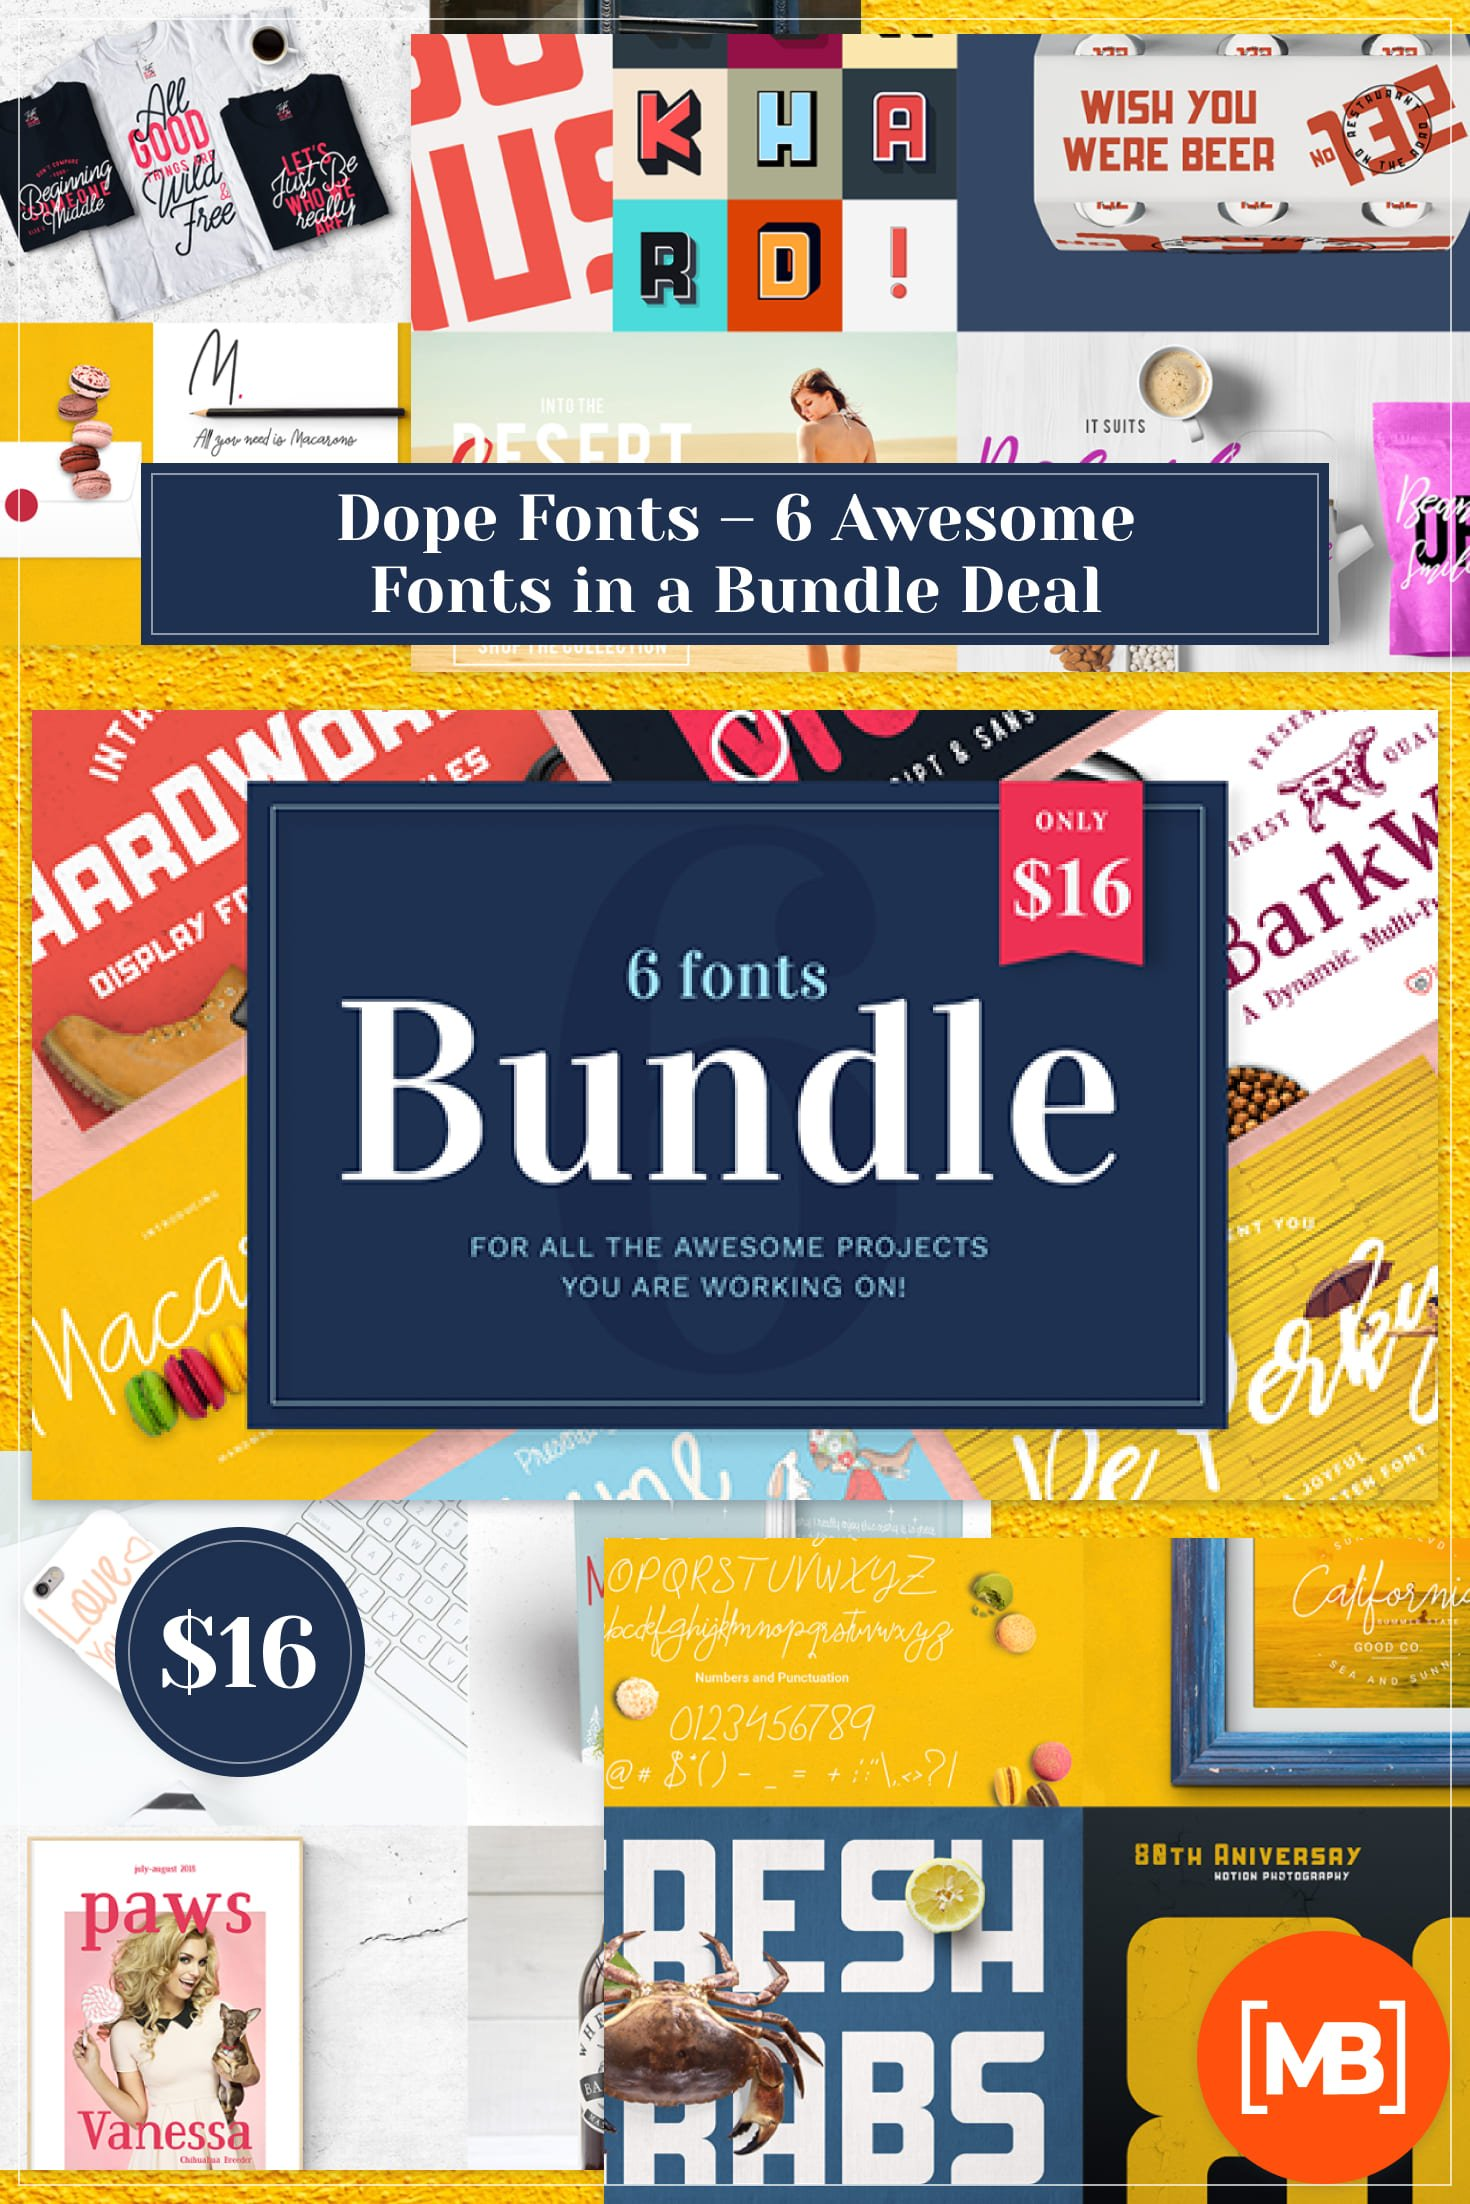 Dope Fonts - 6 Awesome Fonts in a Bundle Deal. Collage Image.